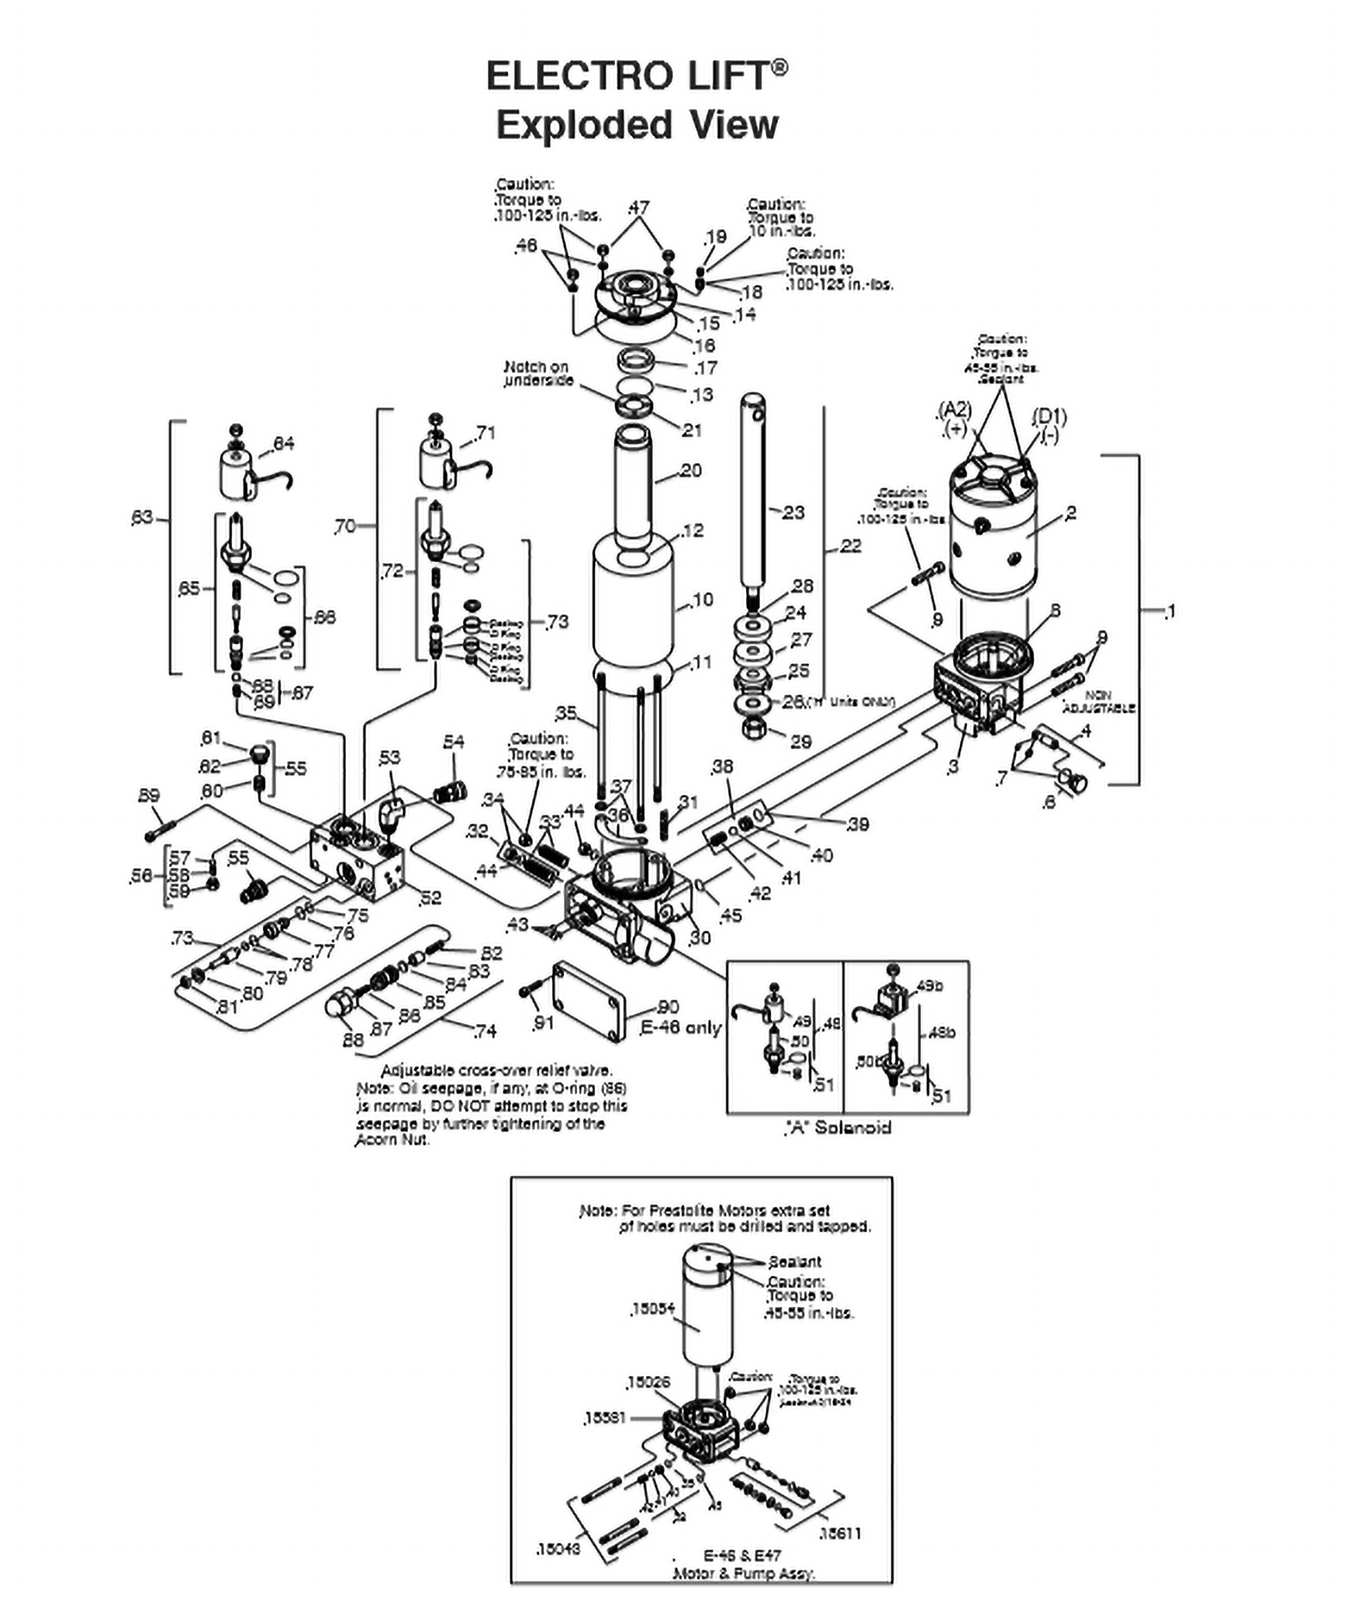 Meyer E68 Wiring Diagram